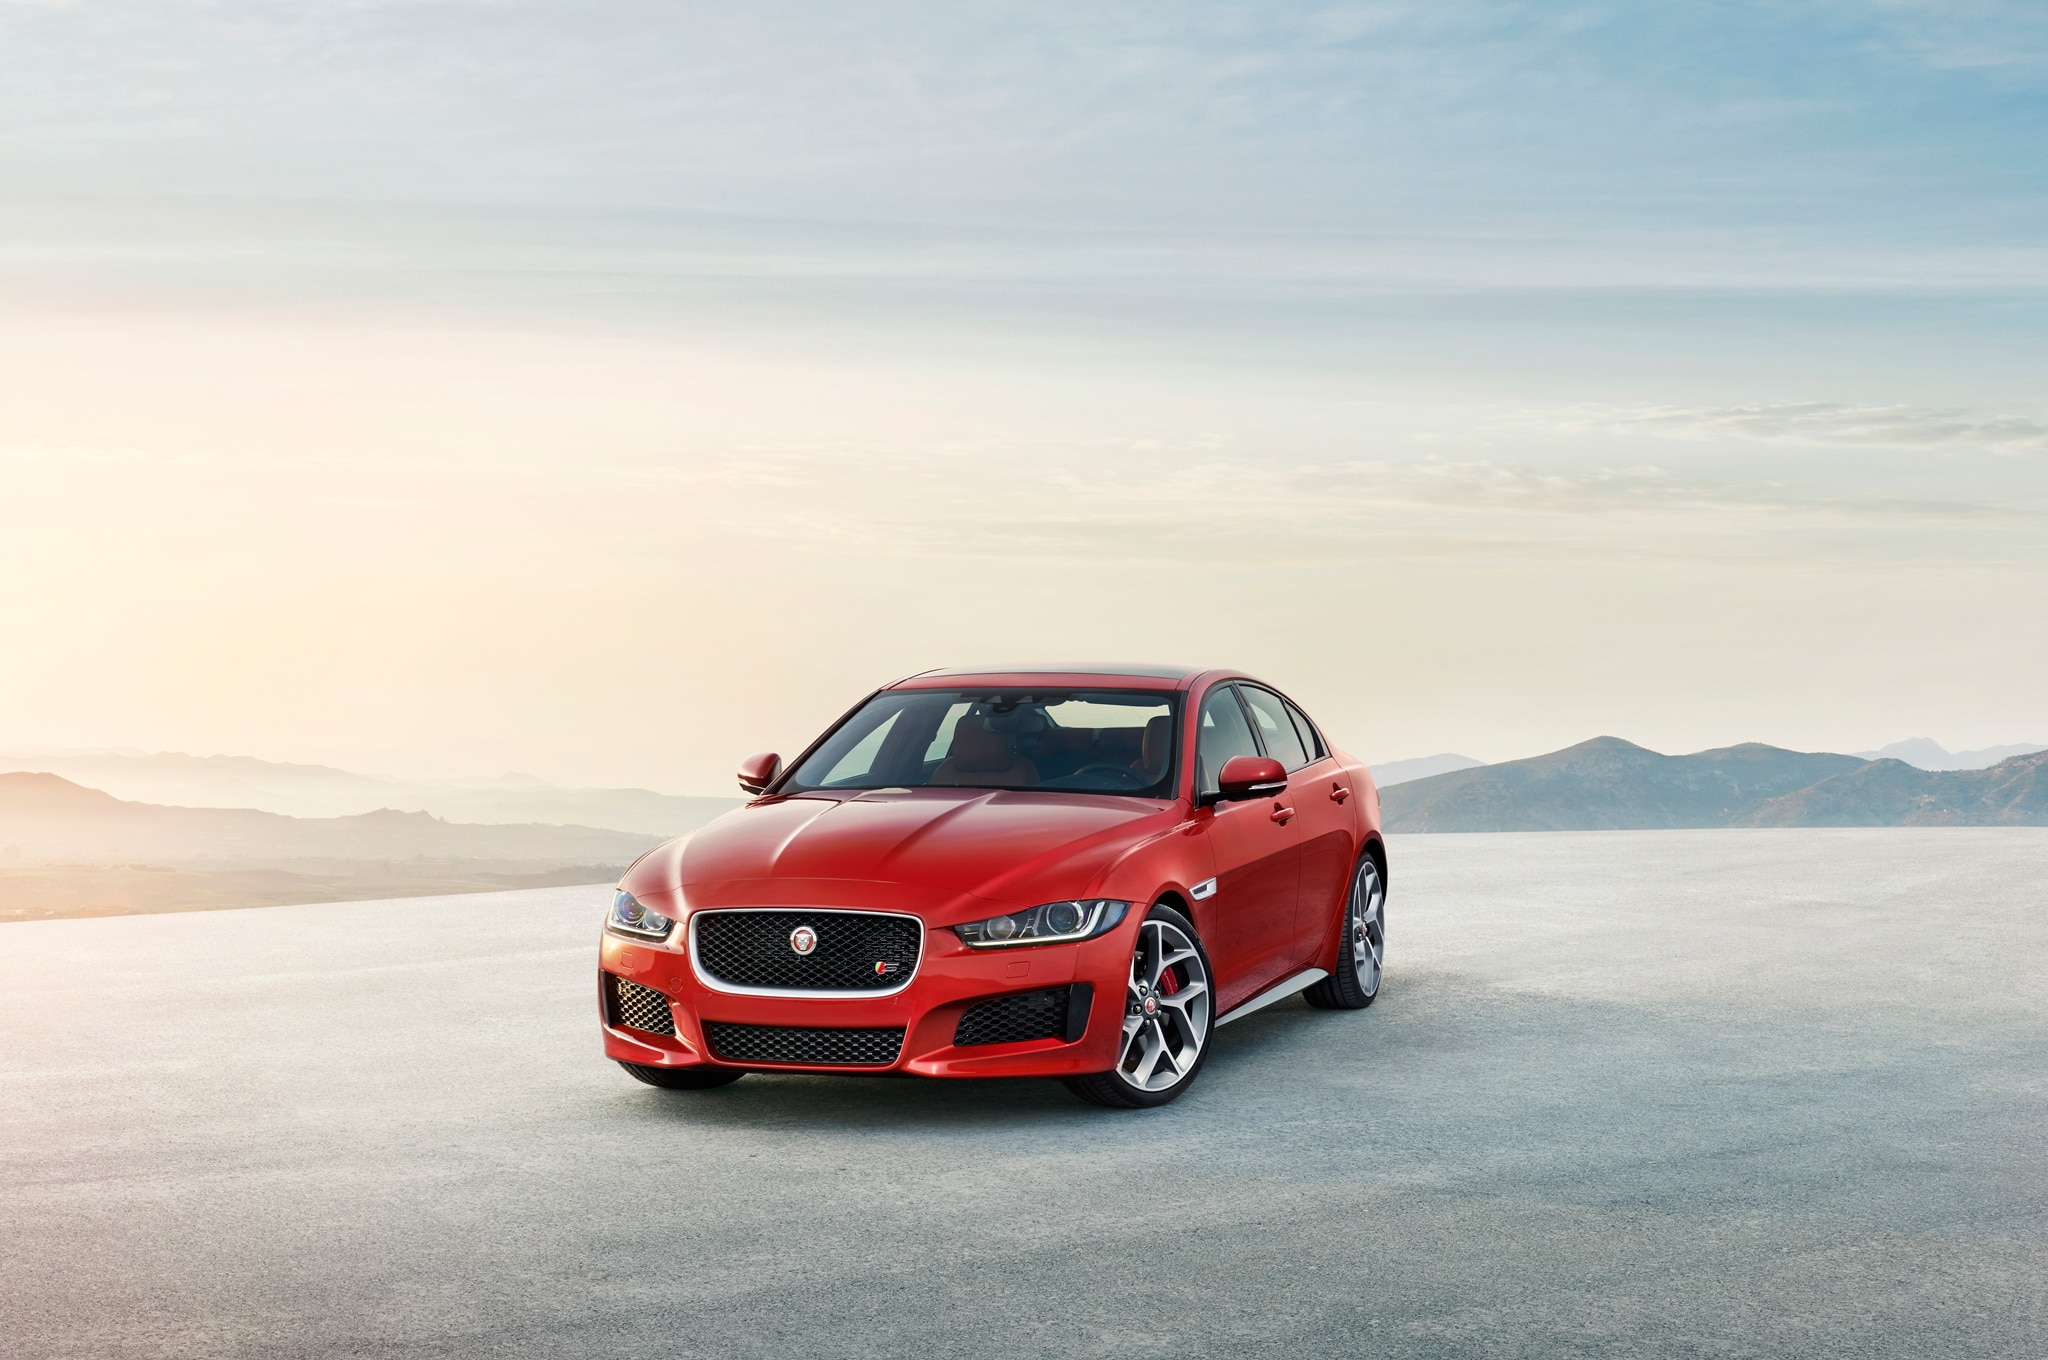 new release jaguar car2017 Jaguar XE First Look The Most Important Car in Jaguars History